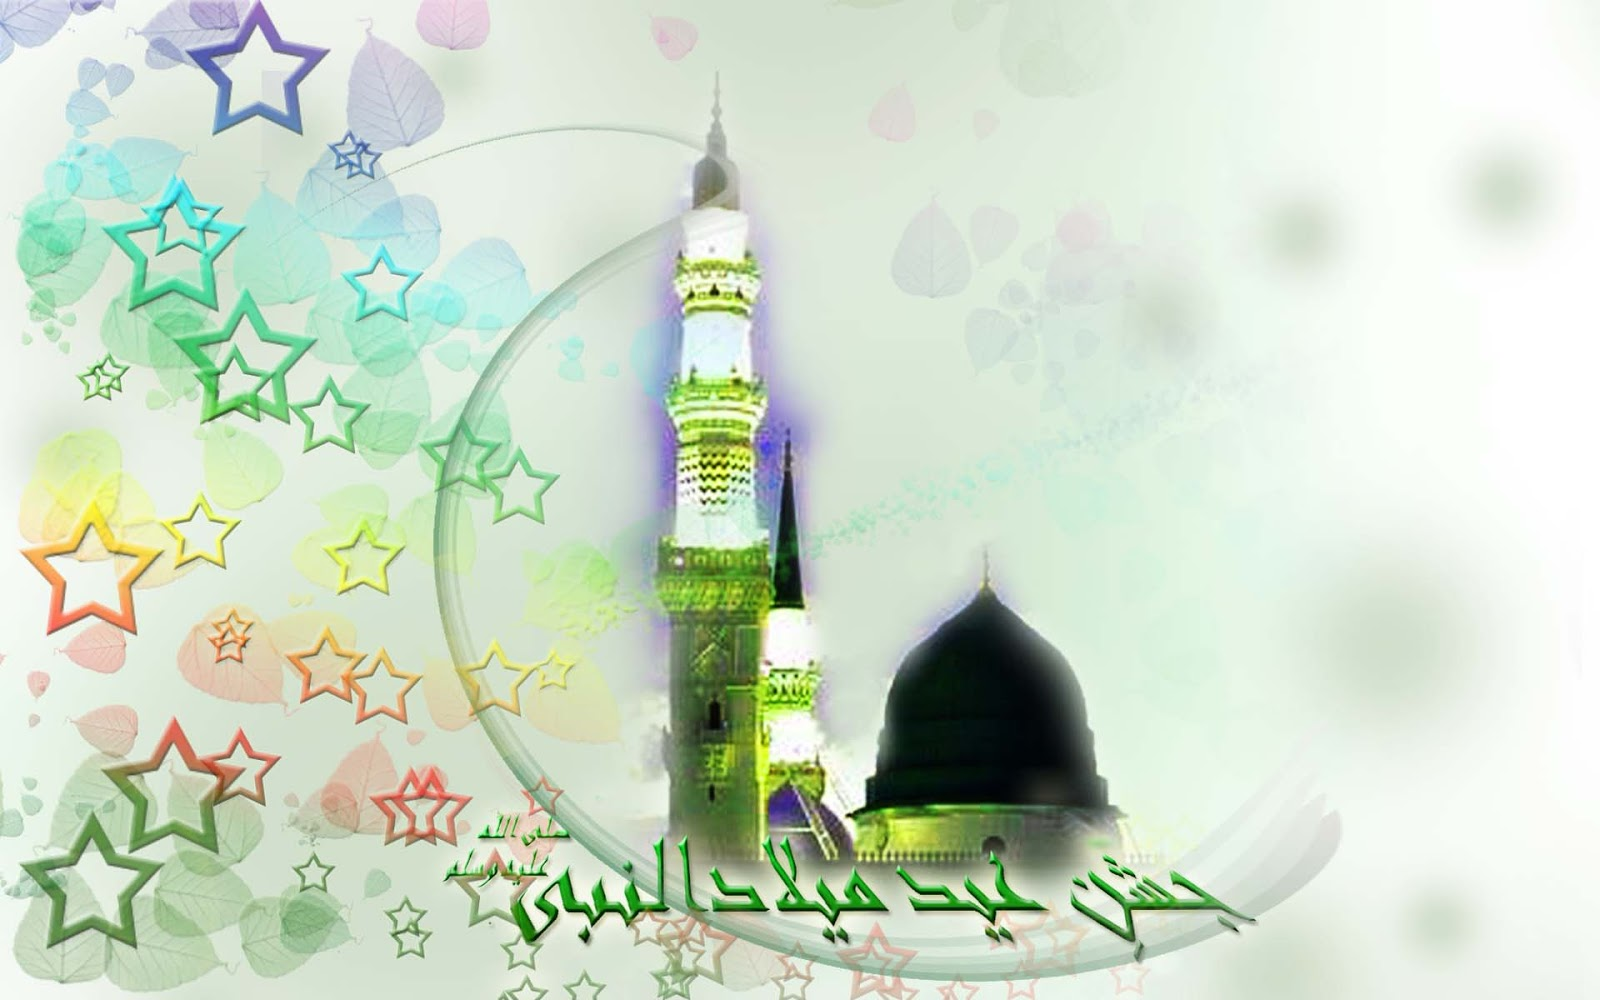 Eid Milad Un Nabi Mubarak Mobile Free Desktop Hd Background Pictures